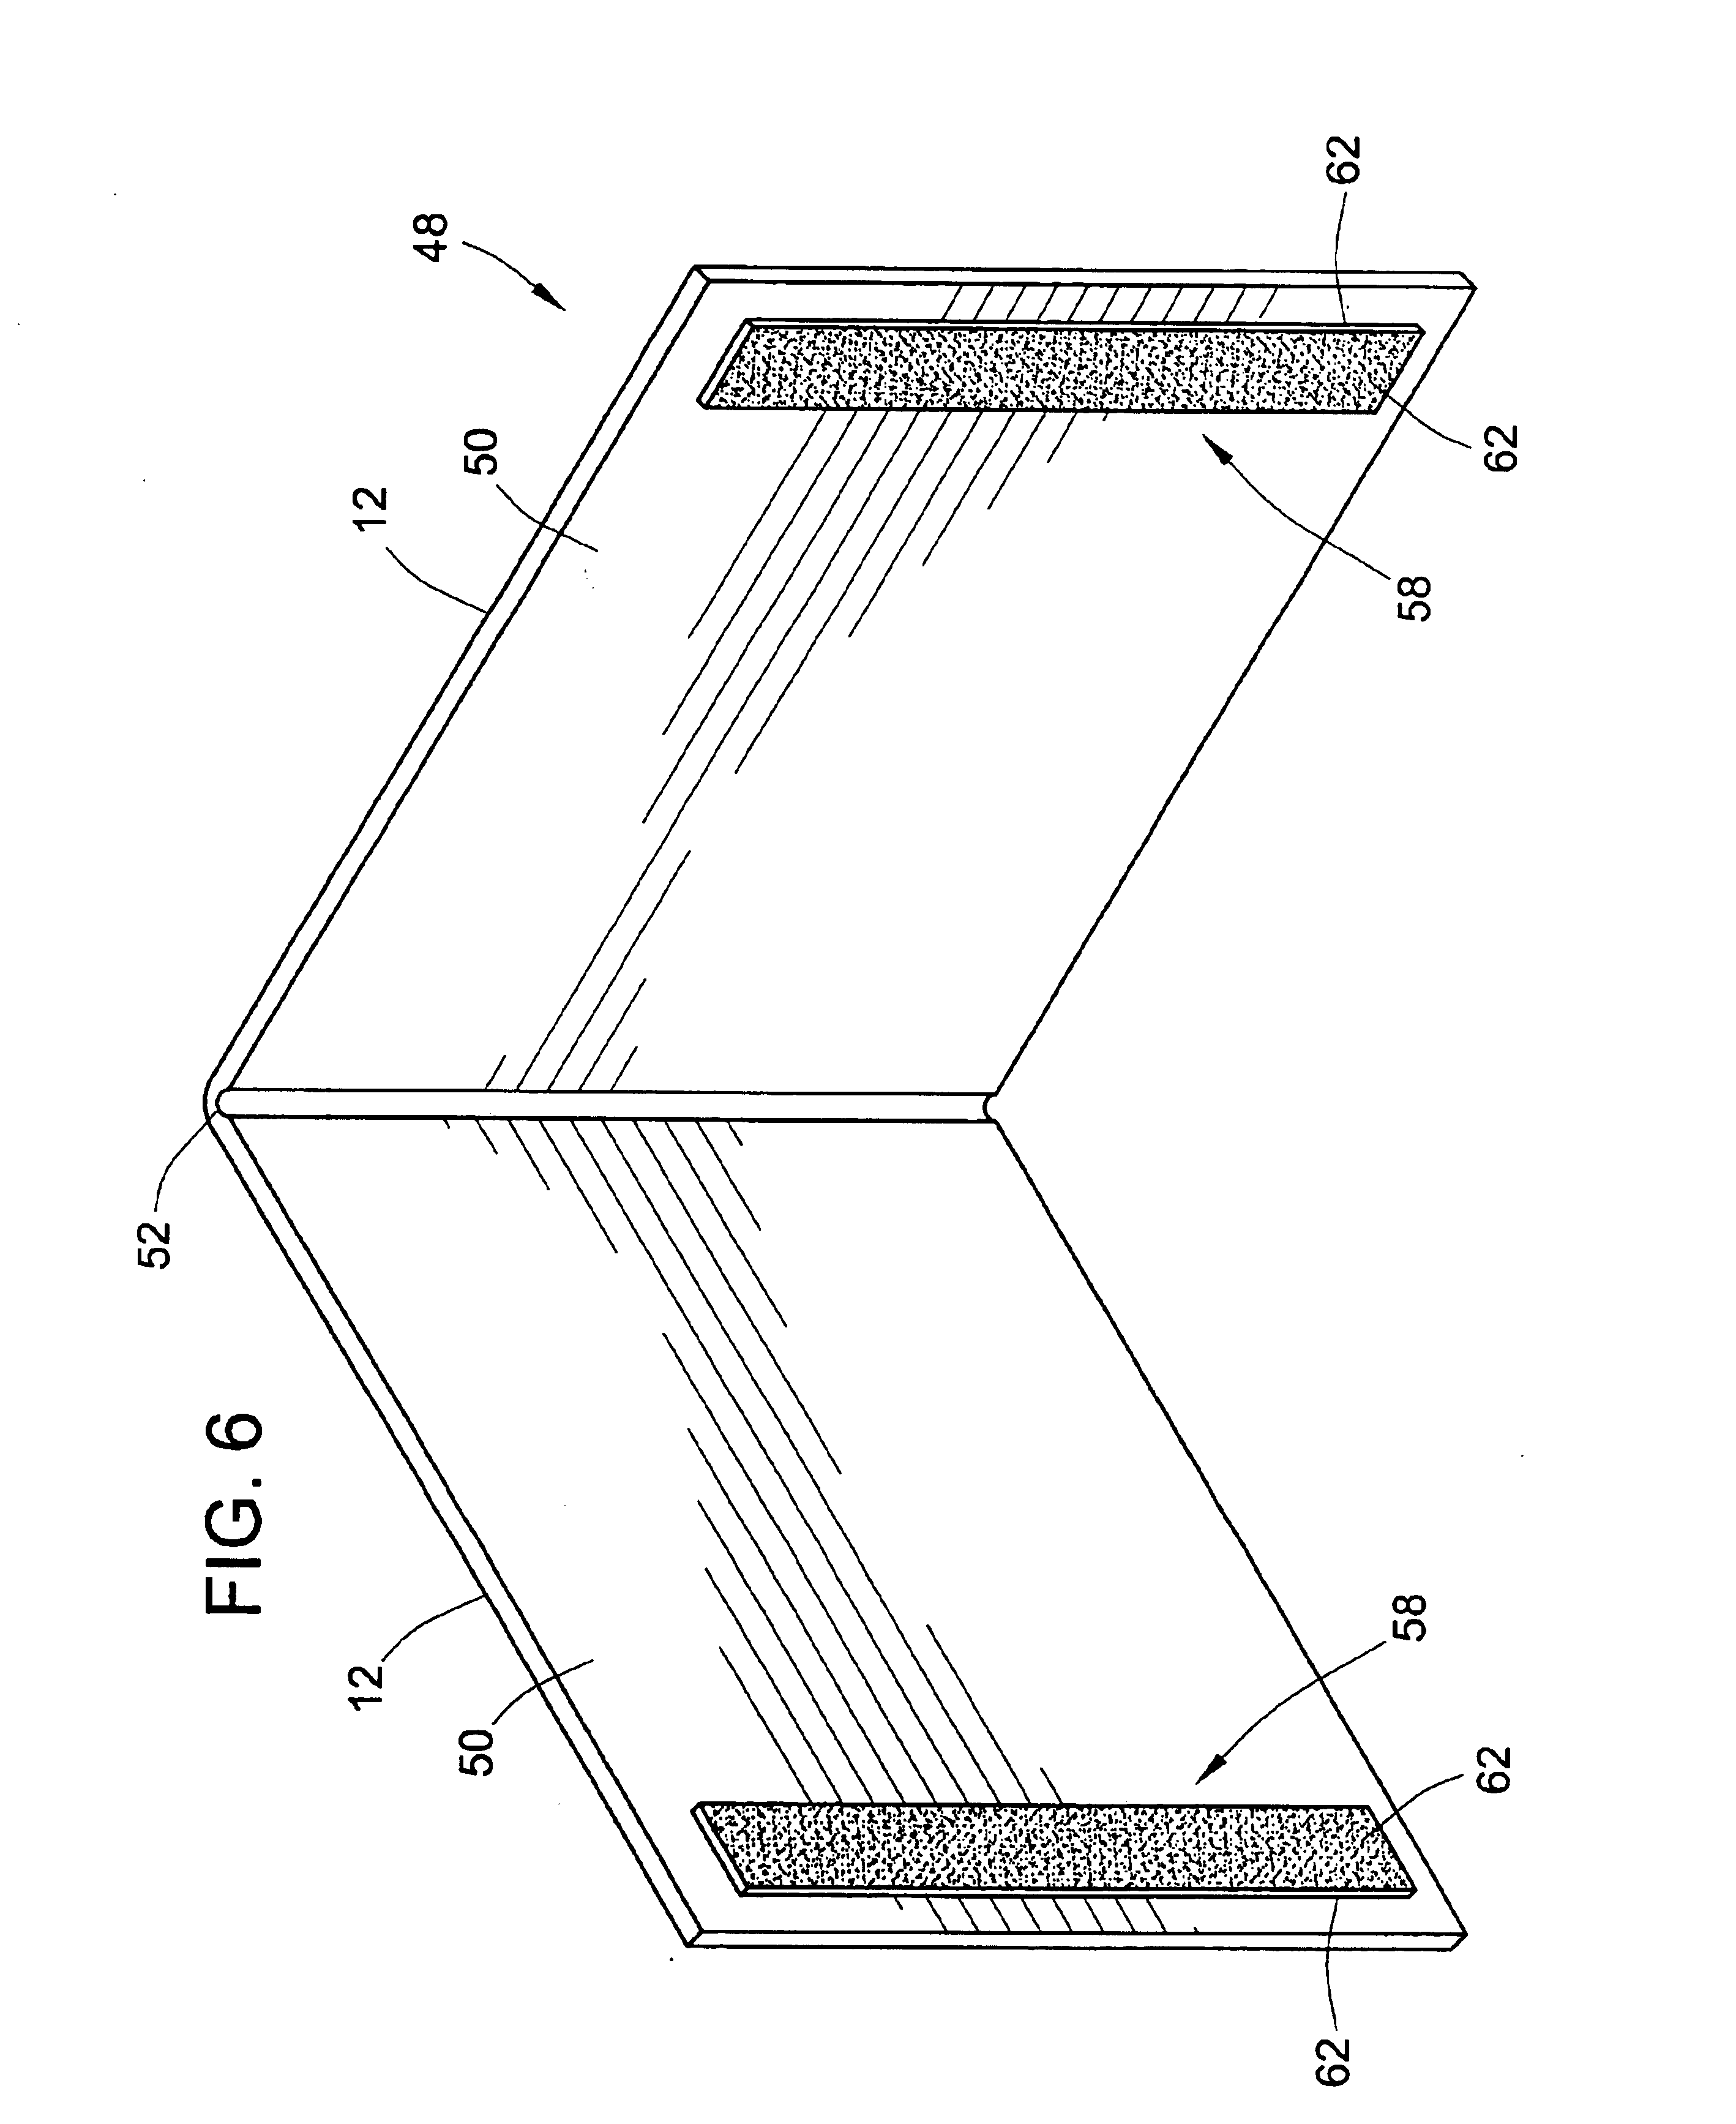 Kick Plates For Cabinets Patent Us6840591 Metallic Toe Kick For Wooden Cabinets Google